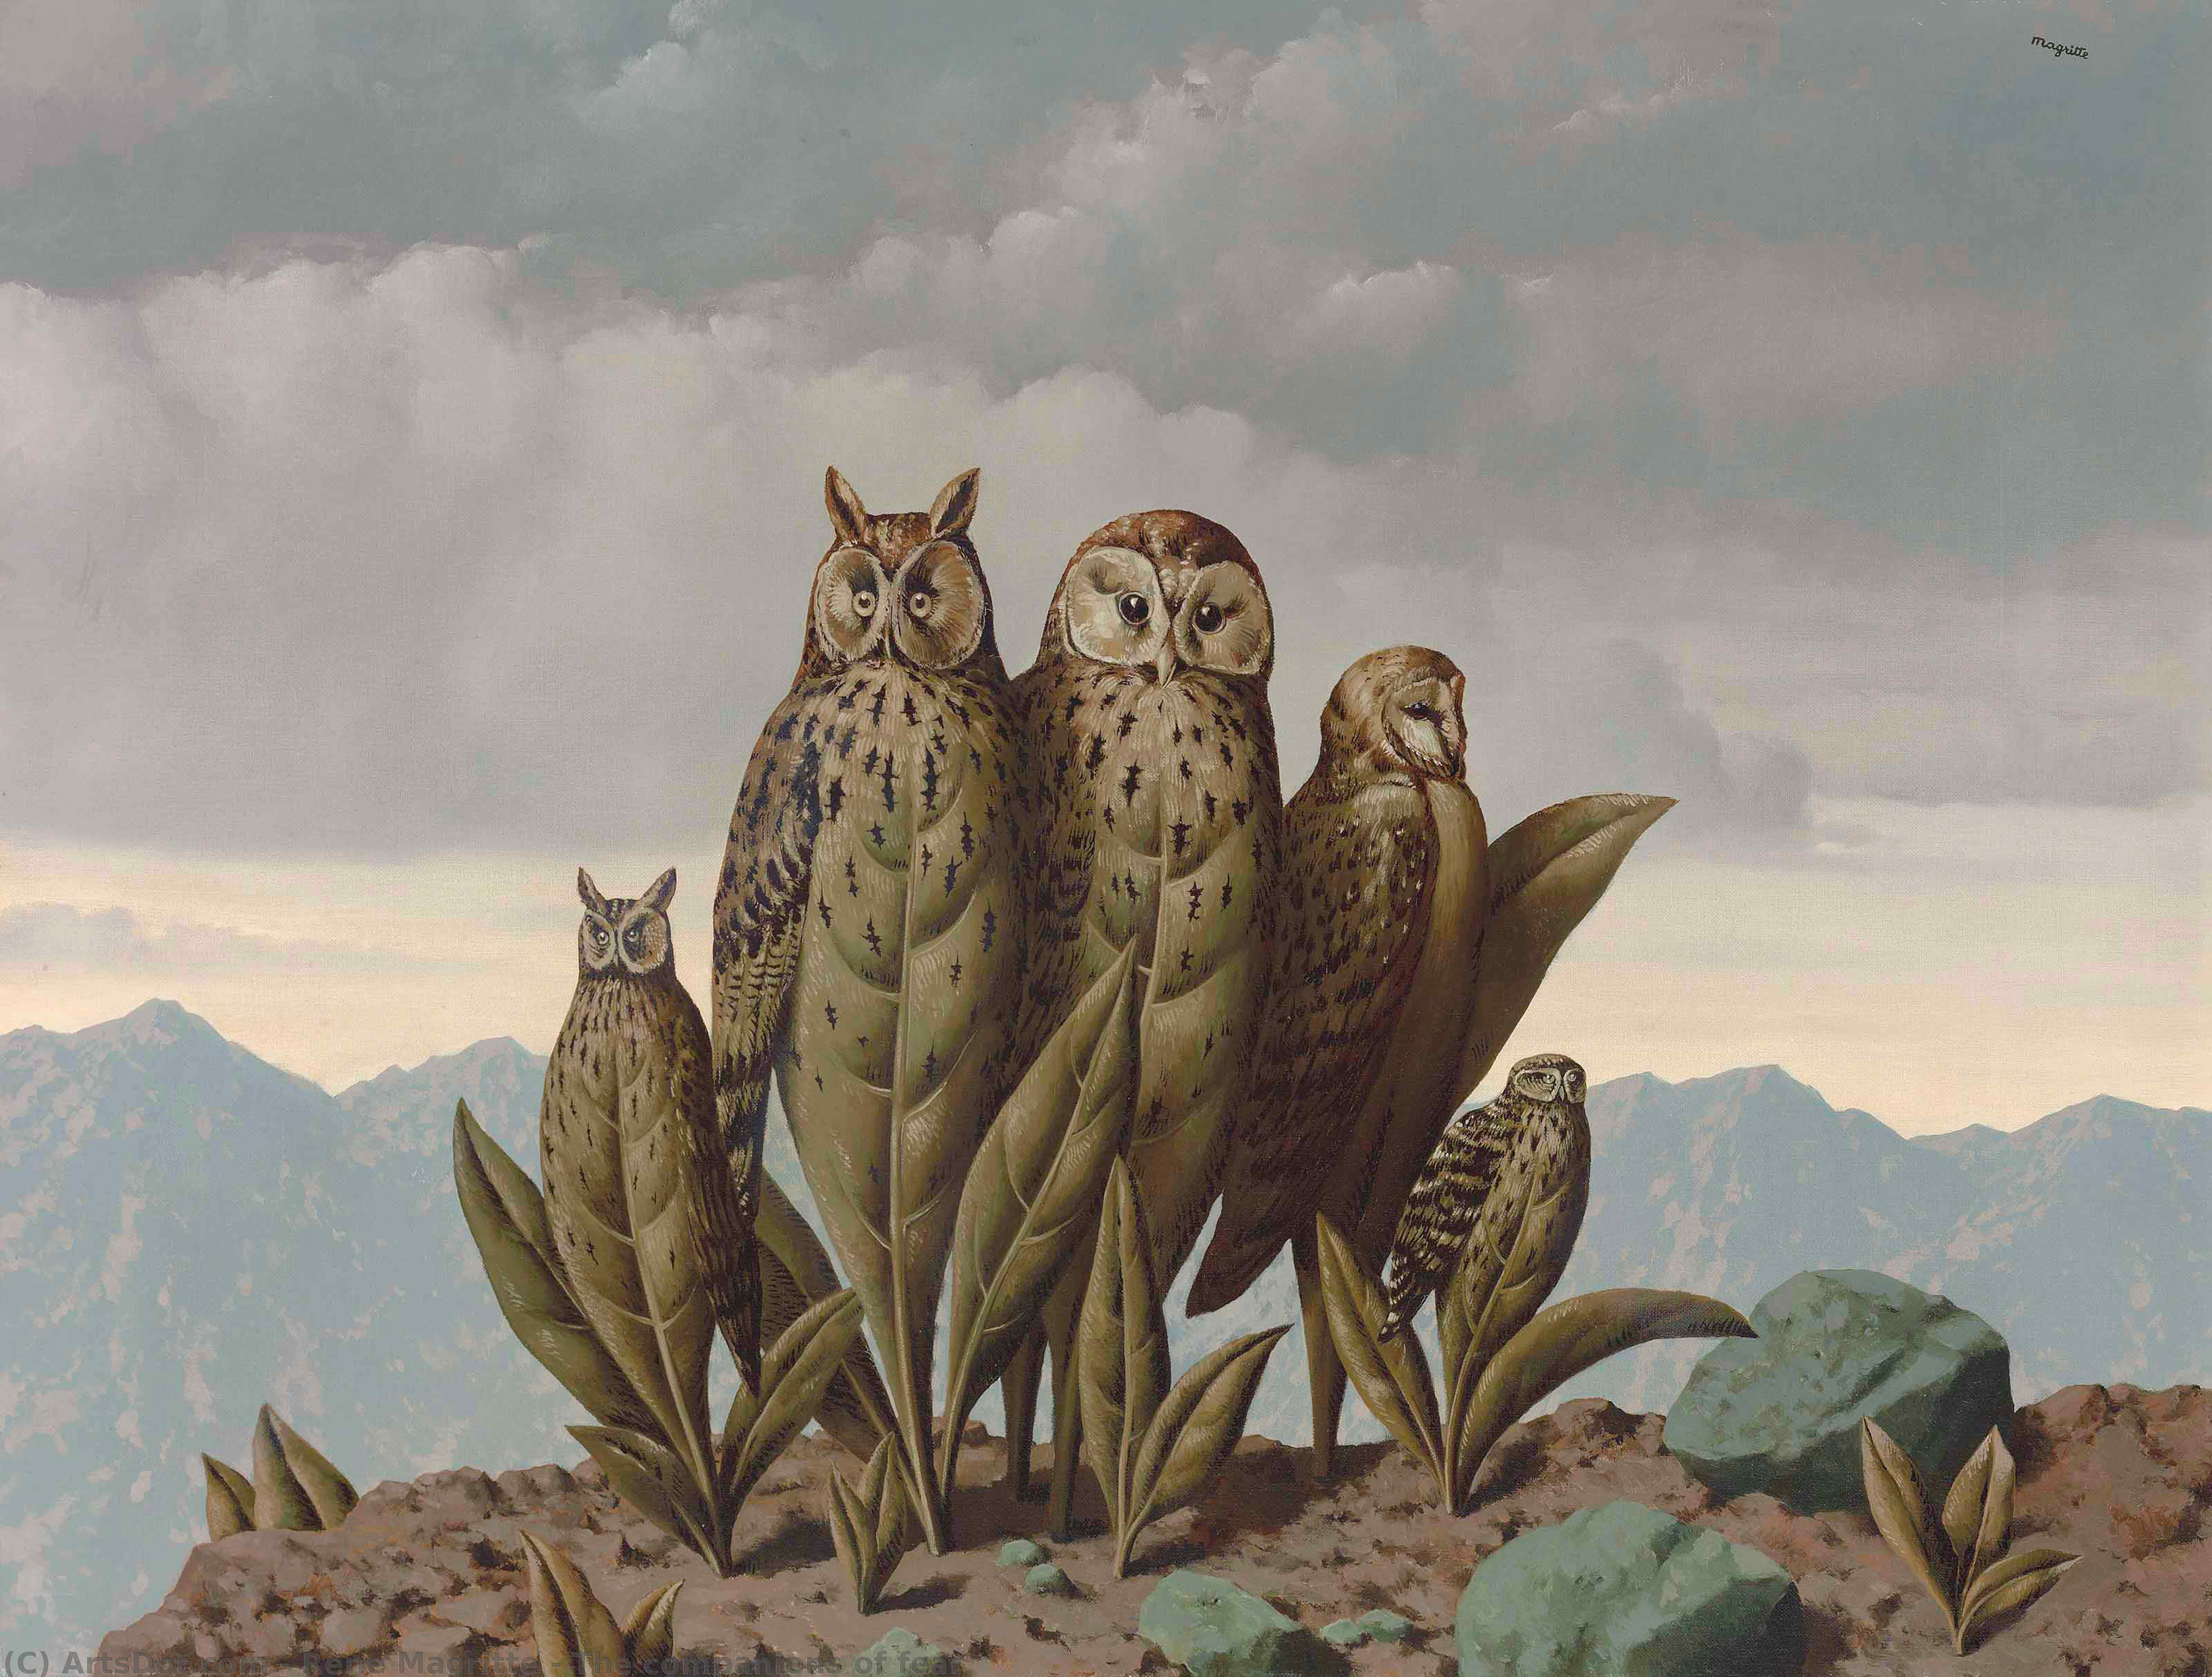 Wikioo.org - The Encyclopedia of Fine Arts - Painting, Artwork by Rene Magritte - The companions of fear